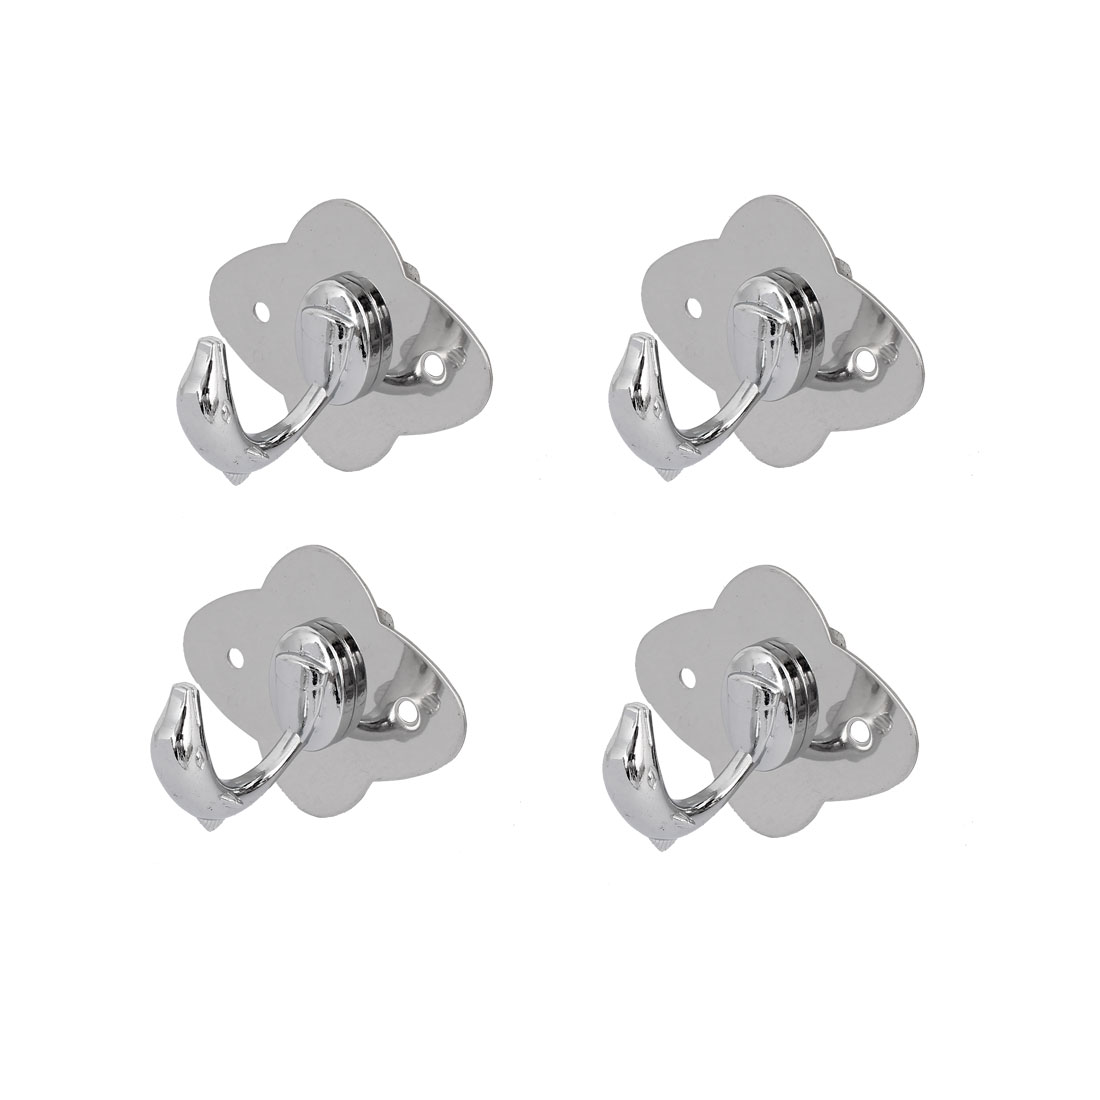 Bathroom Clothes Coat Single Hook Dolphin Shape Stainless Steel Wall Hanger 4pcs